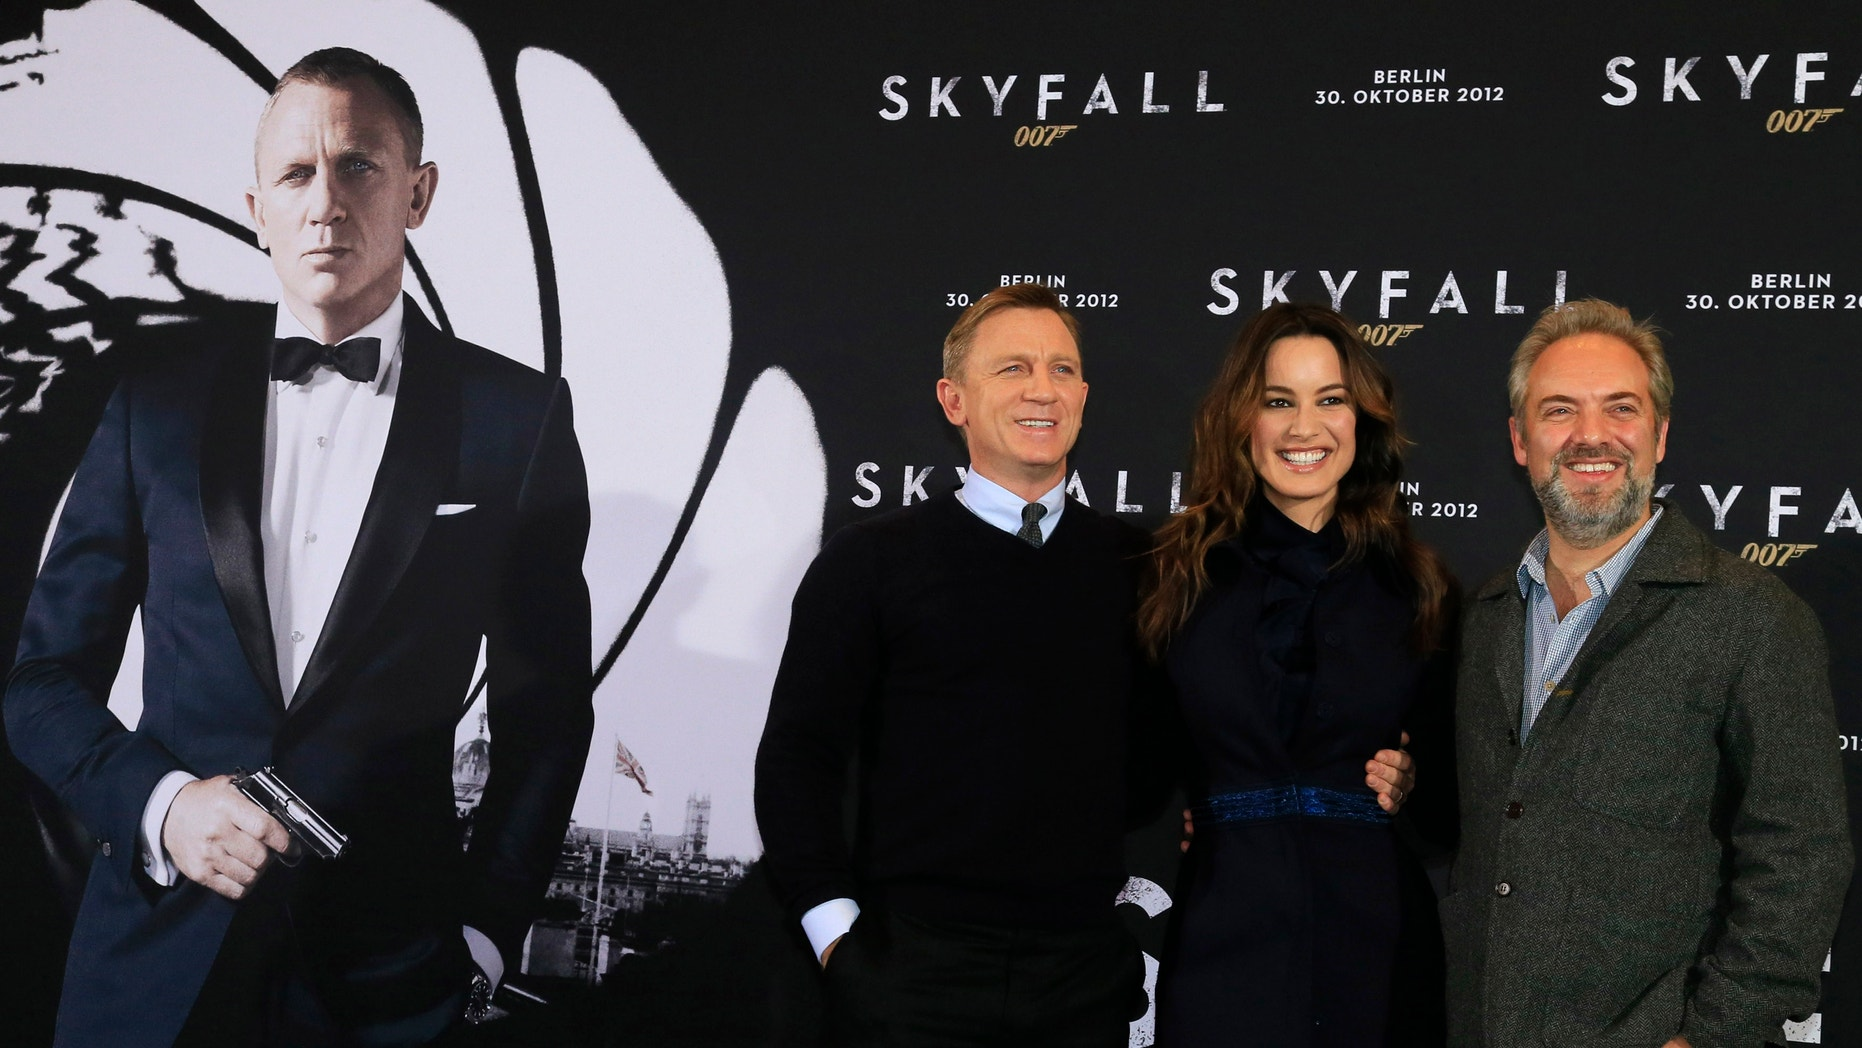 """Director Sam Mendes, right, poses with cast members Daniel Craig and Berenice Marlohe, center, during a photocall to promote their film """"Skyfall"""" in Berlin October 30, 2012."""